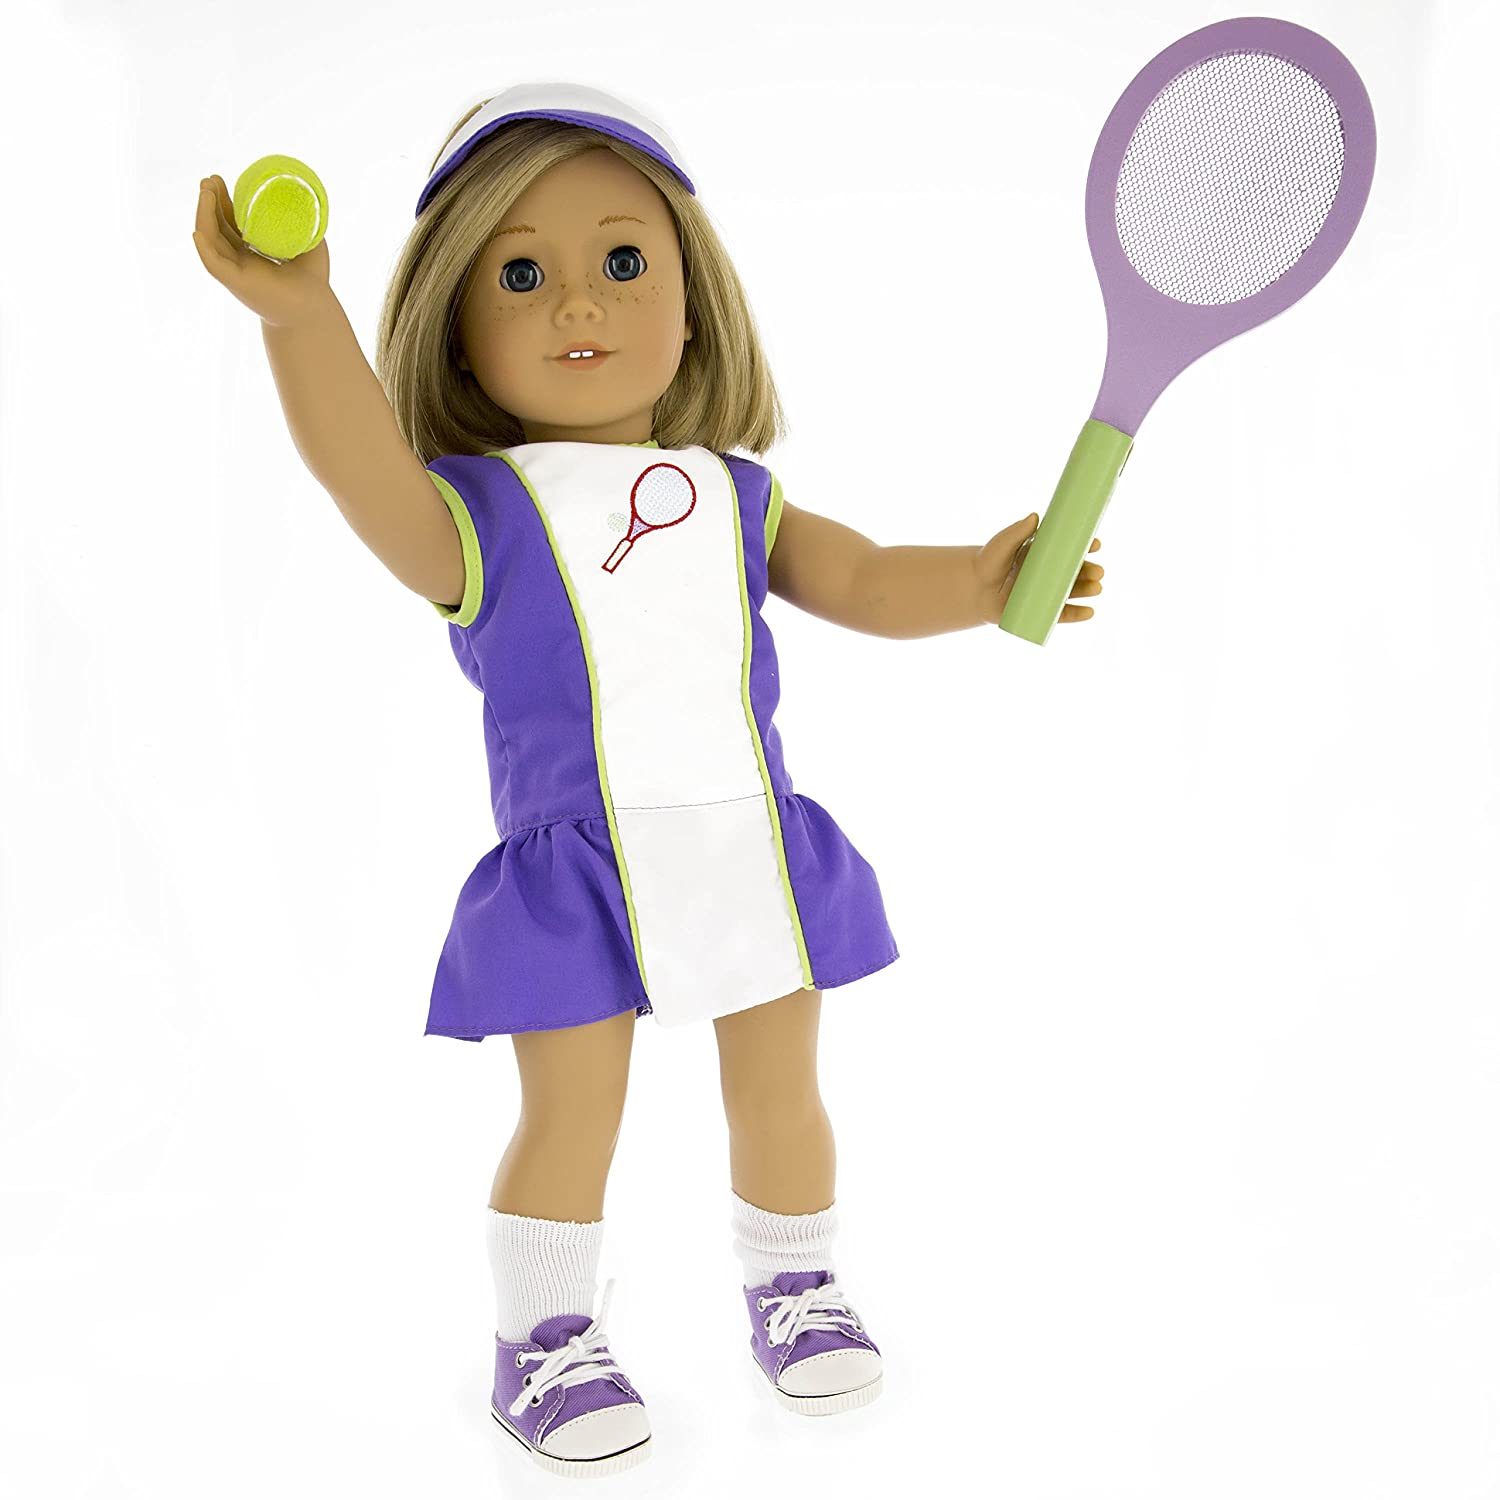 466afe0907e42 Tennis Outfit for American Girl Dolls: 6 Pc (Dress, Hat, Racket, Ball,  Socks and Shoes)